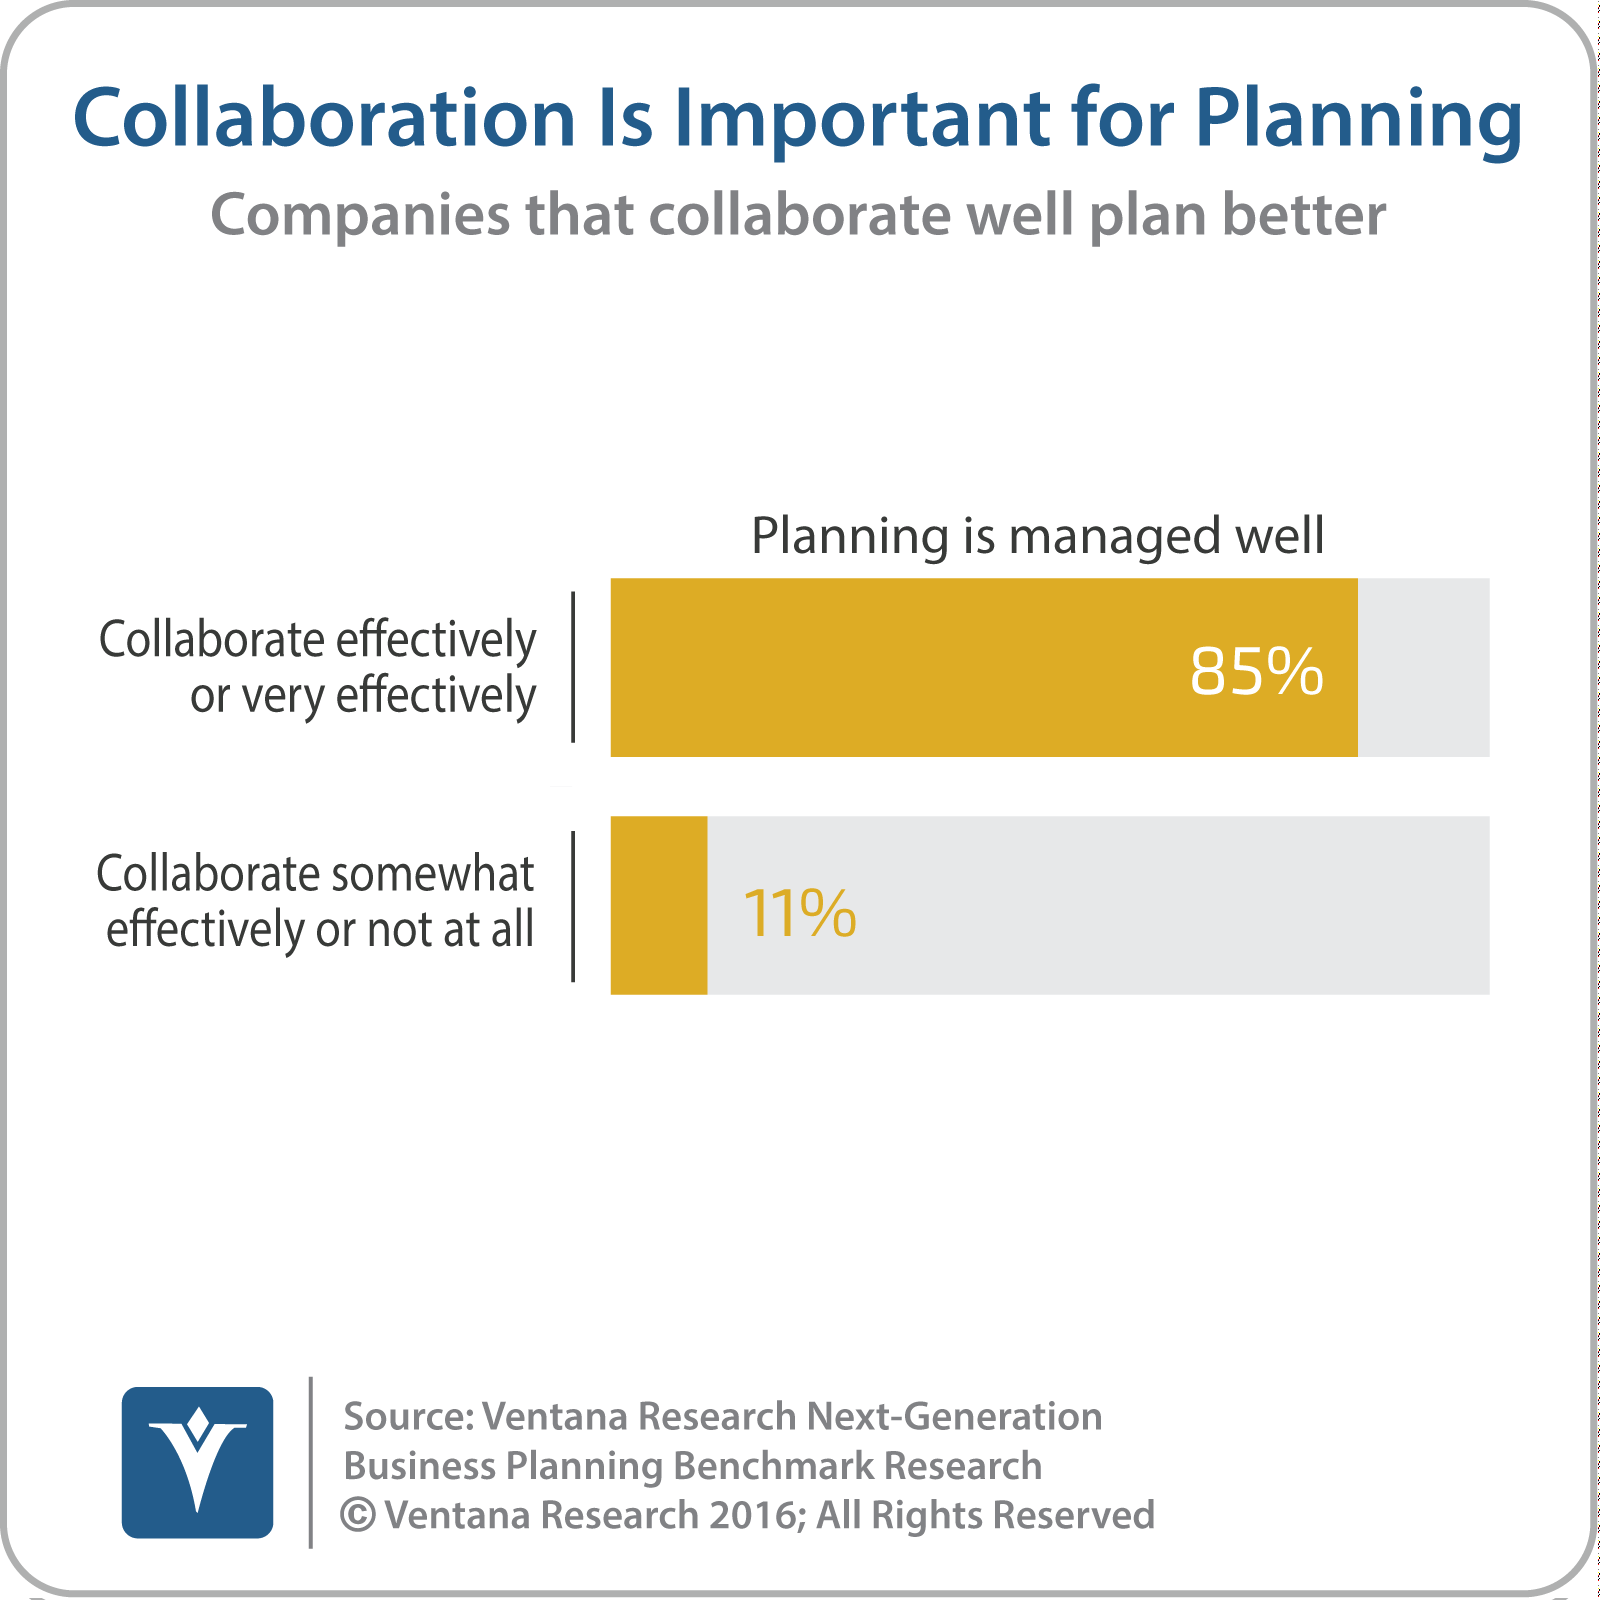 vr_NGBP_03_collaboration_is_important_for_planning_updated2-1